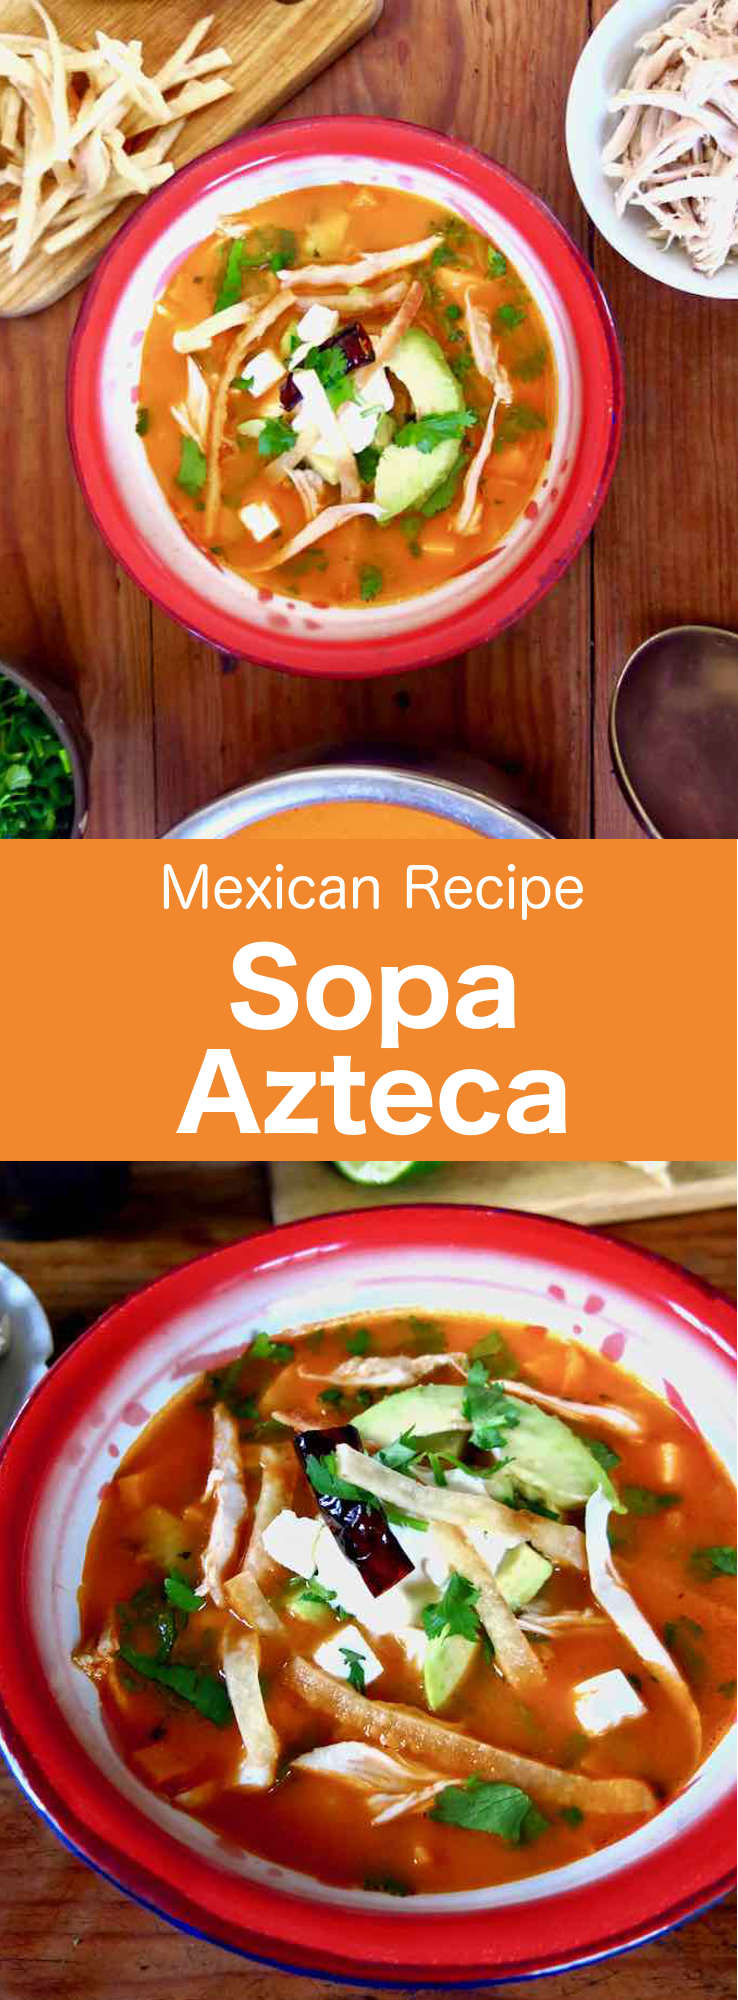 Sopa azteca is a delicious traditional Mexican soup recipe prepared with fried tortillas and served with avocado, cheese and cream. #Mexican #MexicanFood #MexicanCuisine #MexicanRecipe #WorldCuisine #196flavors